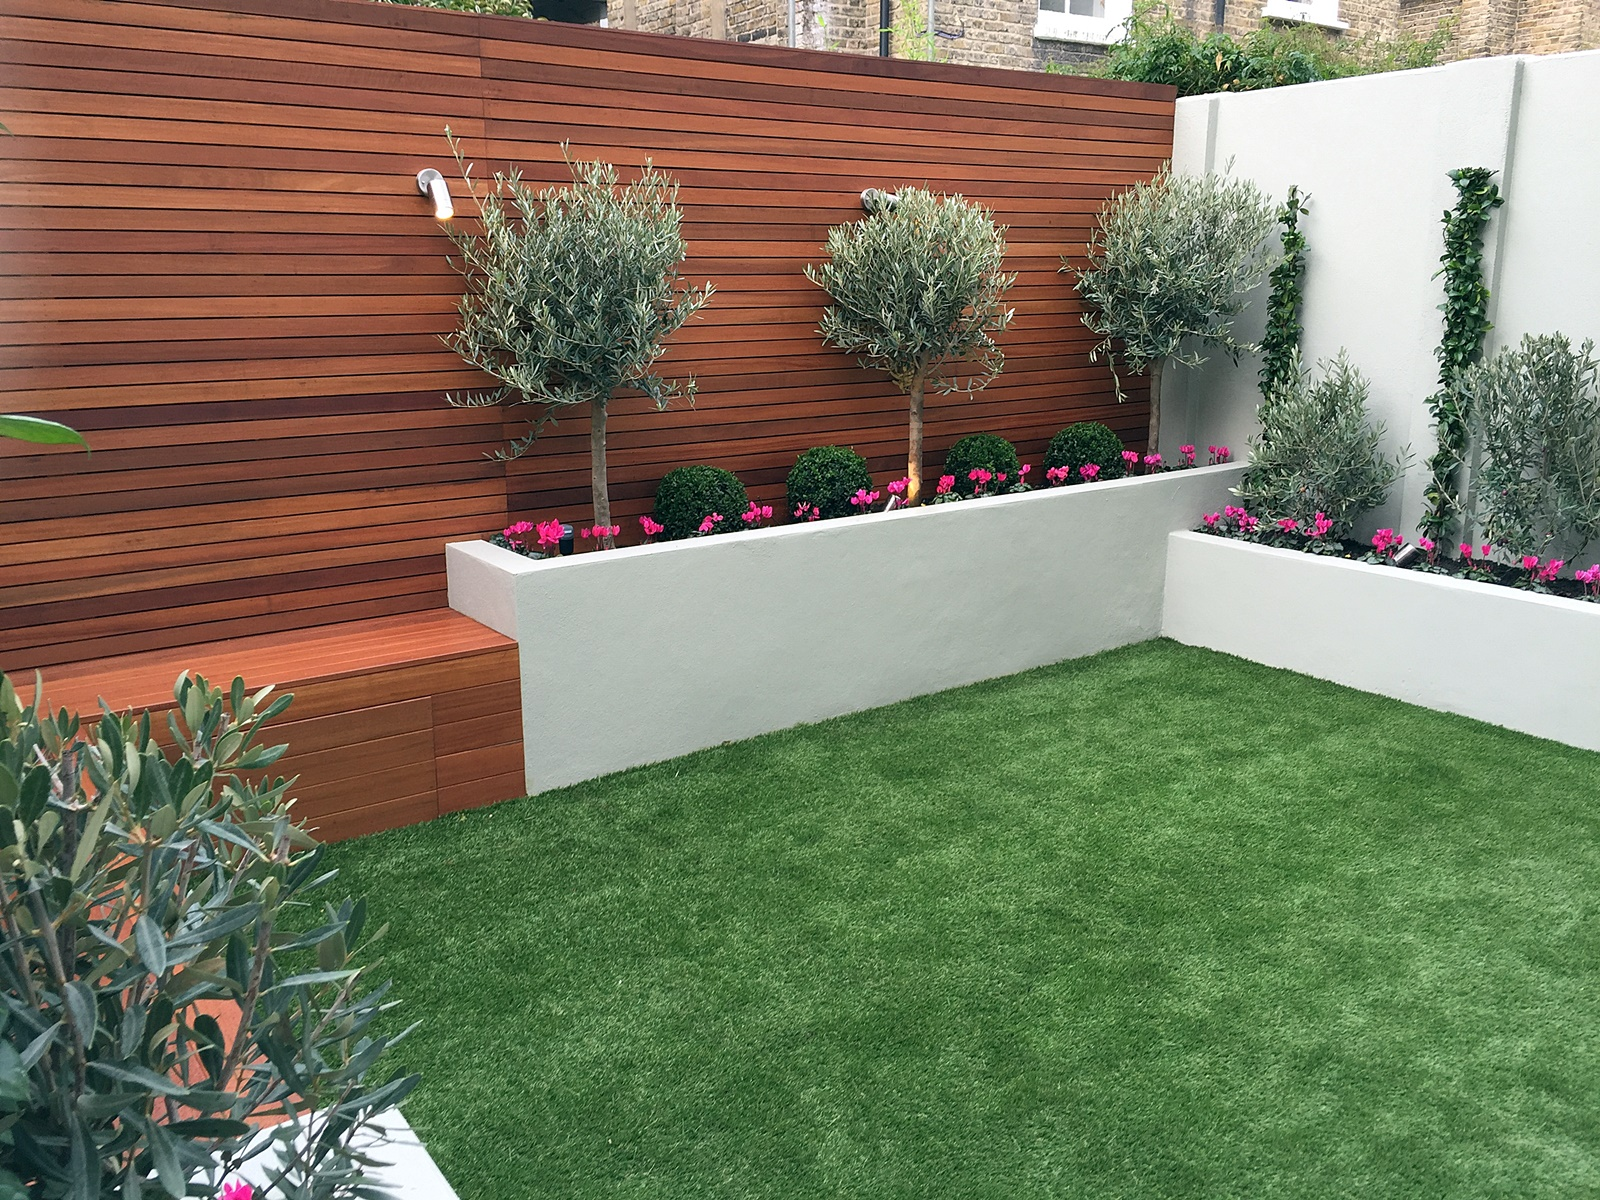 Designer london garden blog for Garden design ideas artificial grass